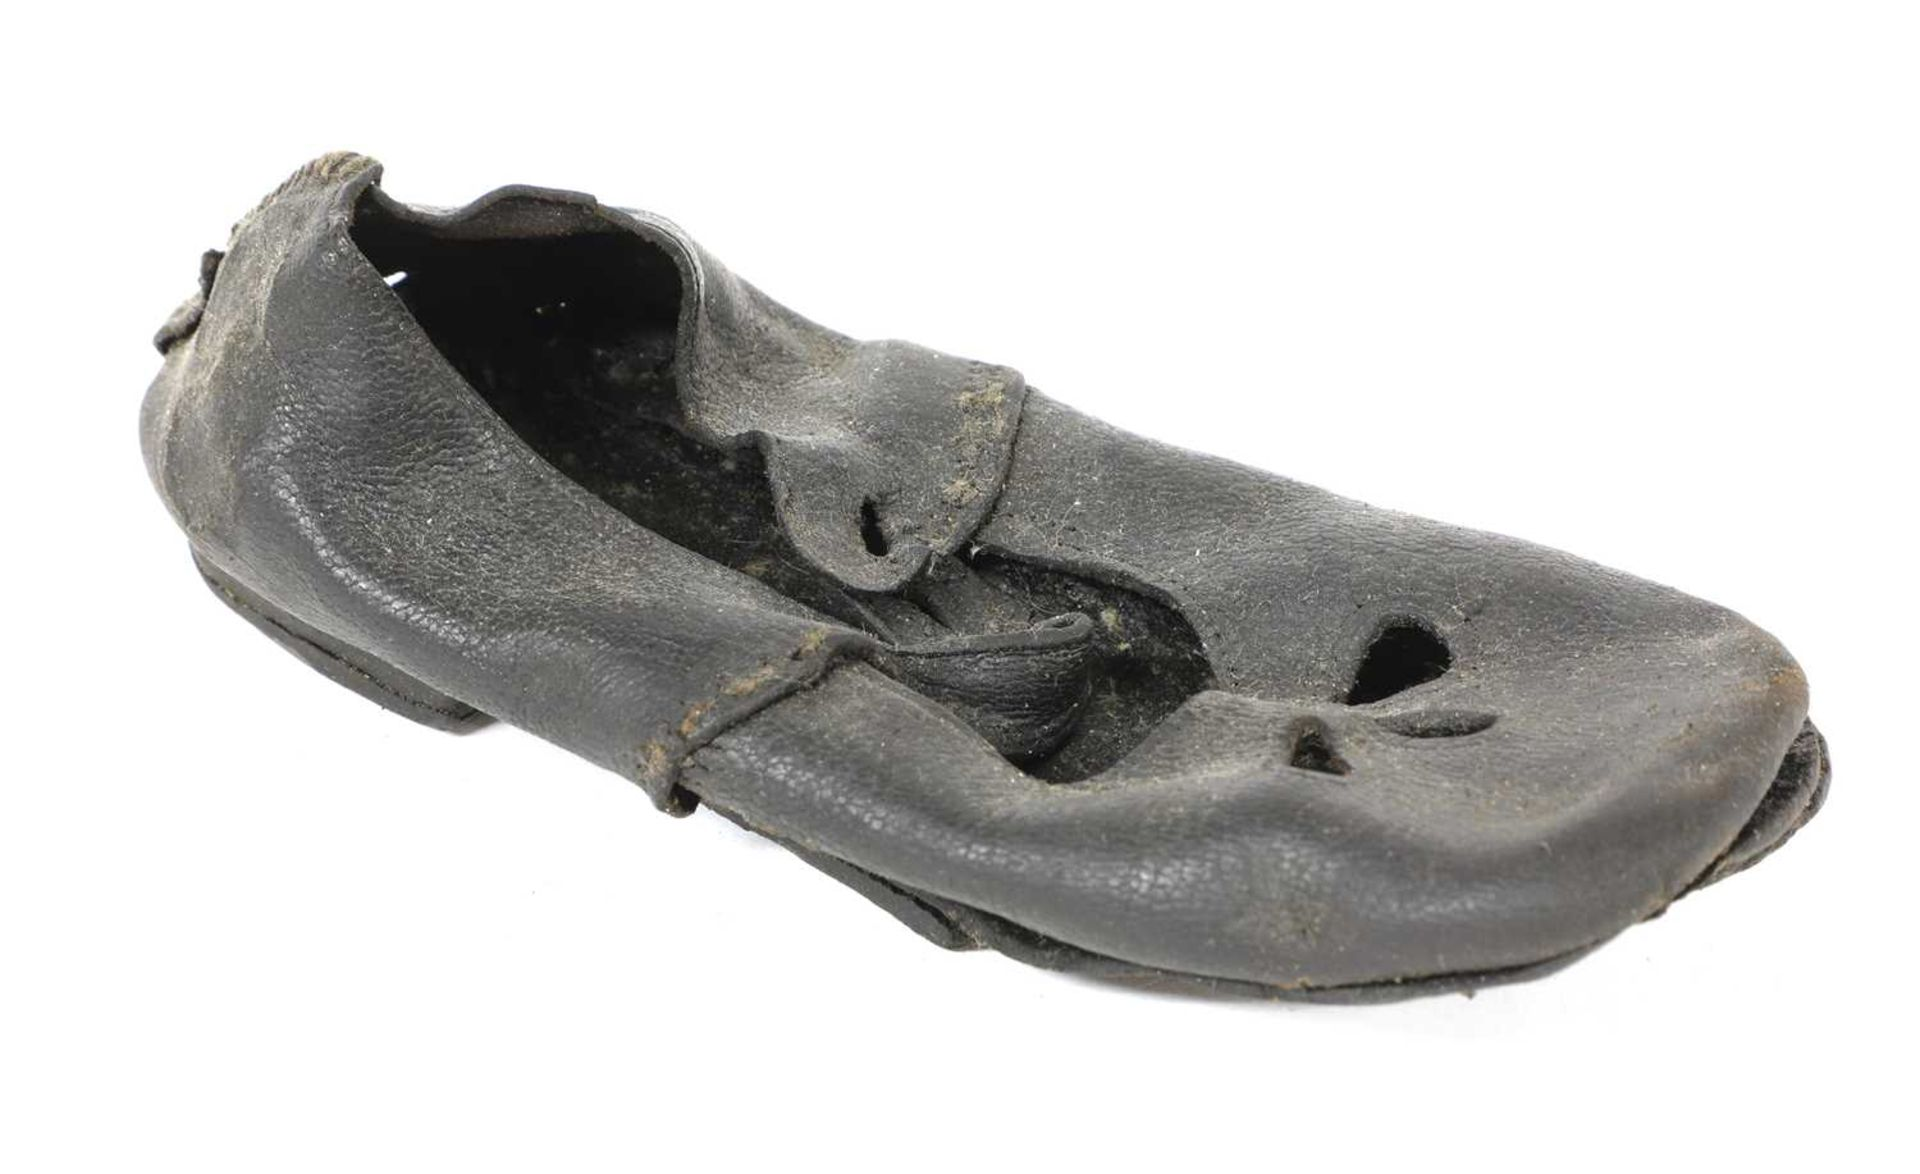 LEATHER SHOE COMPONENTS,